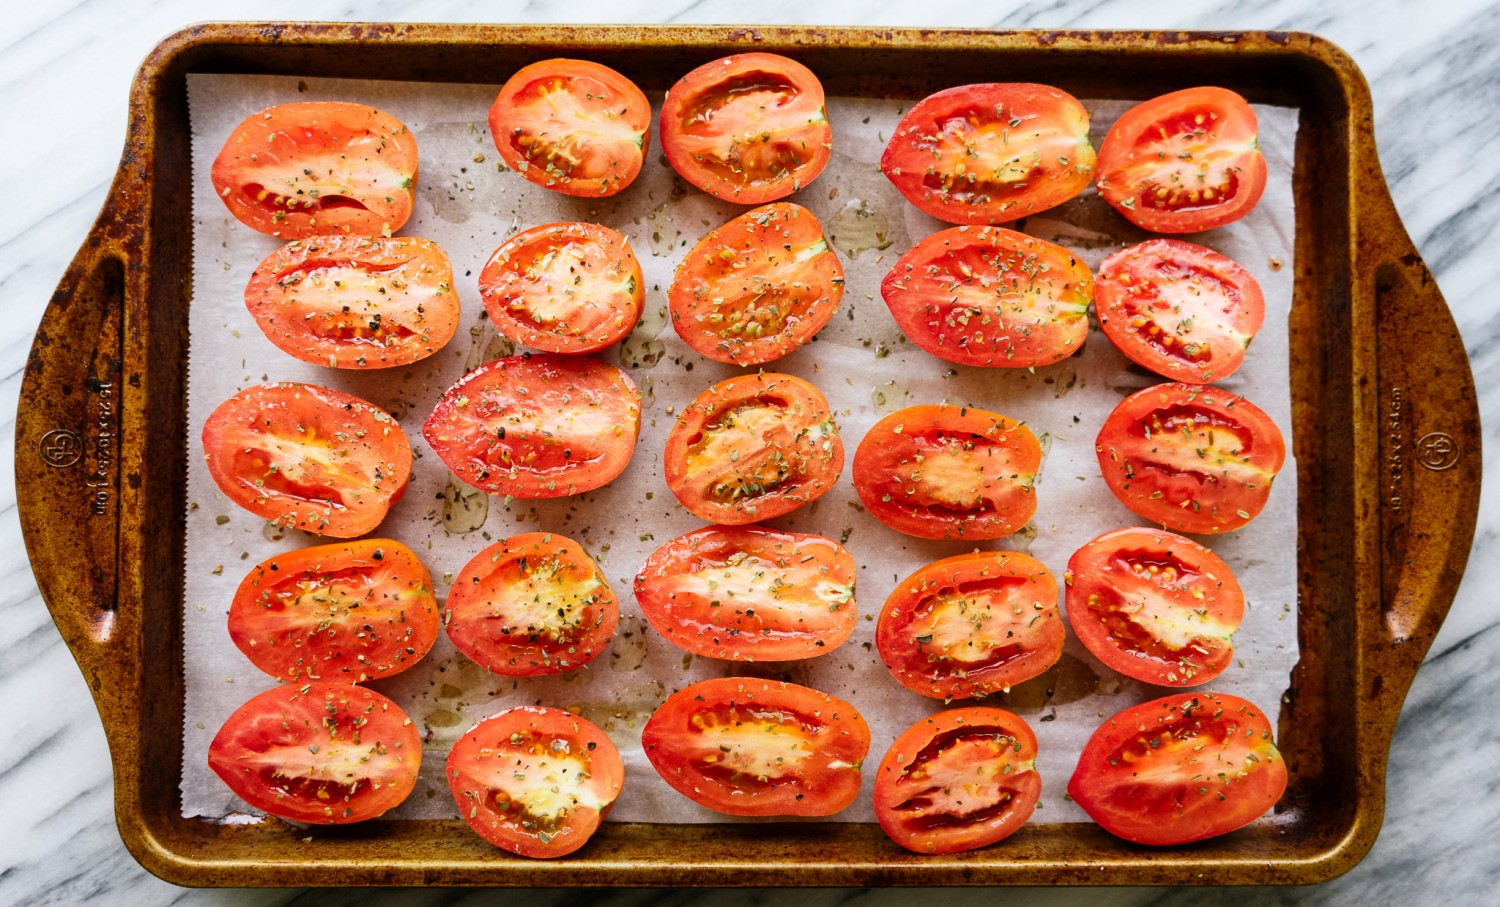 Above view of raw tomato halves on a roasted sheet for a roasted tomato and burrata salad